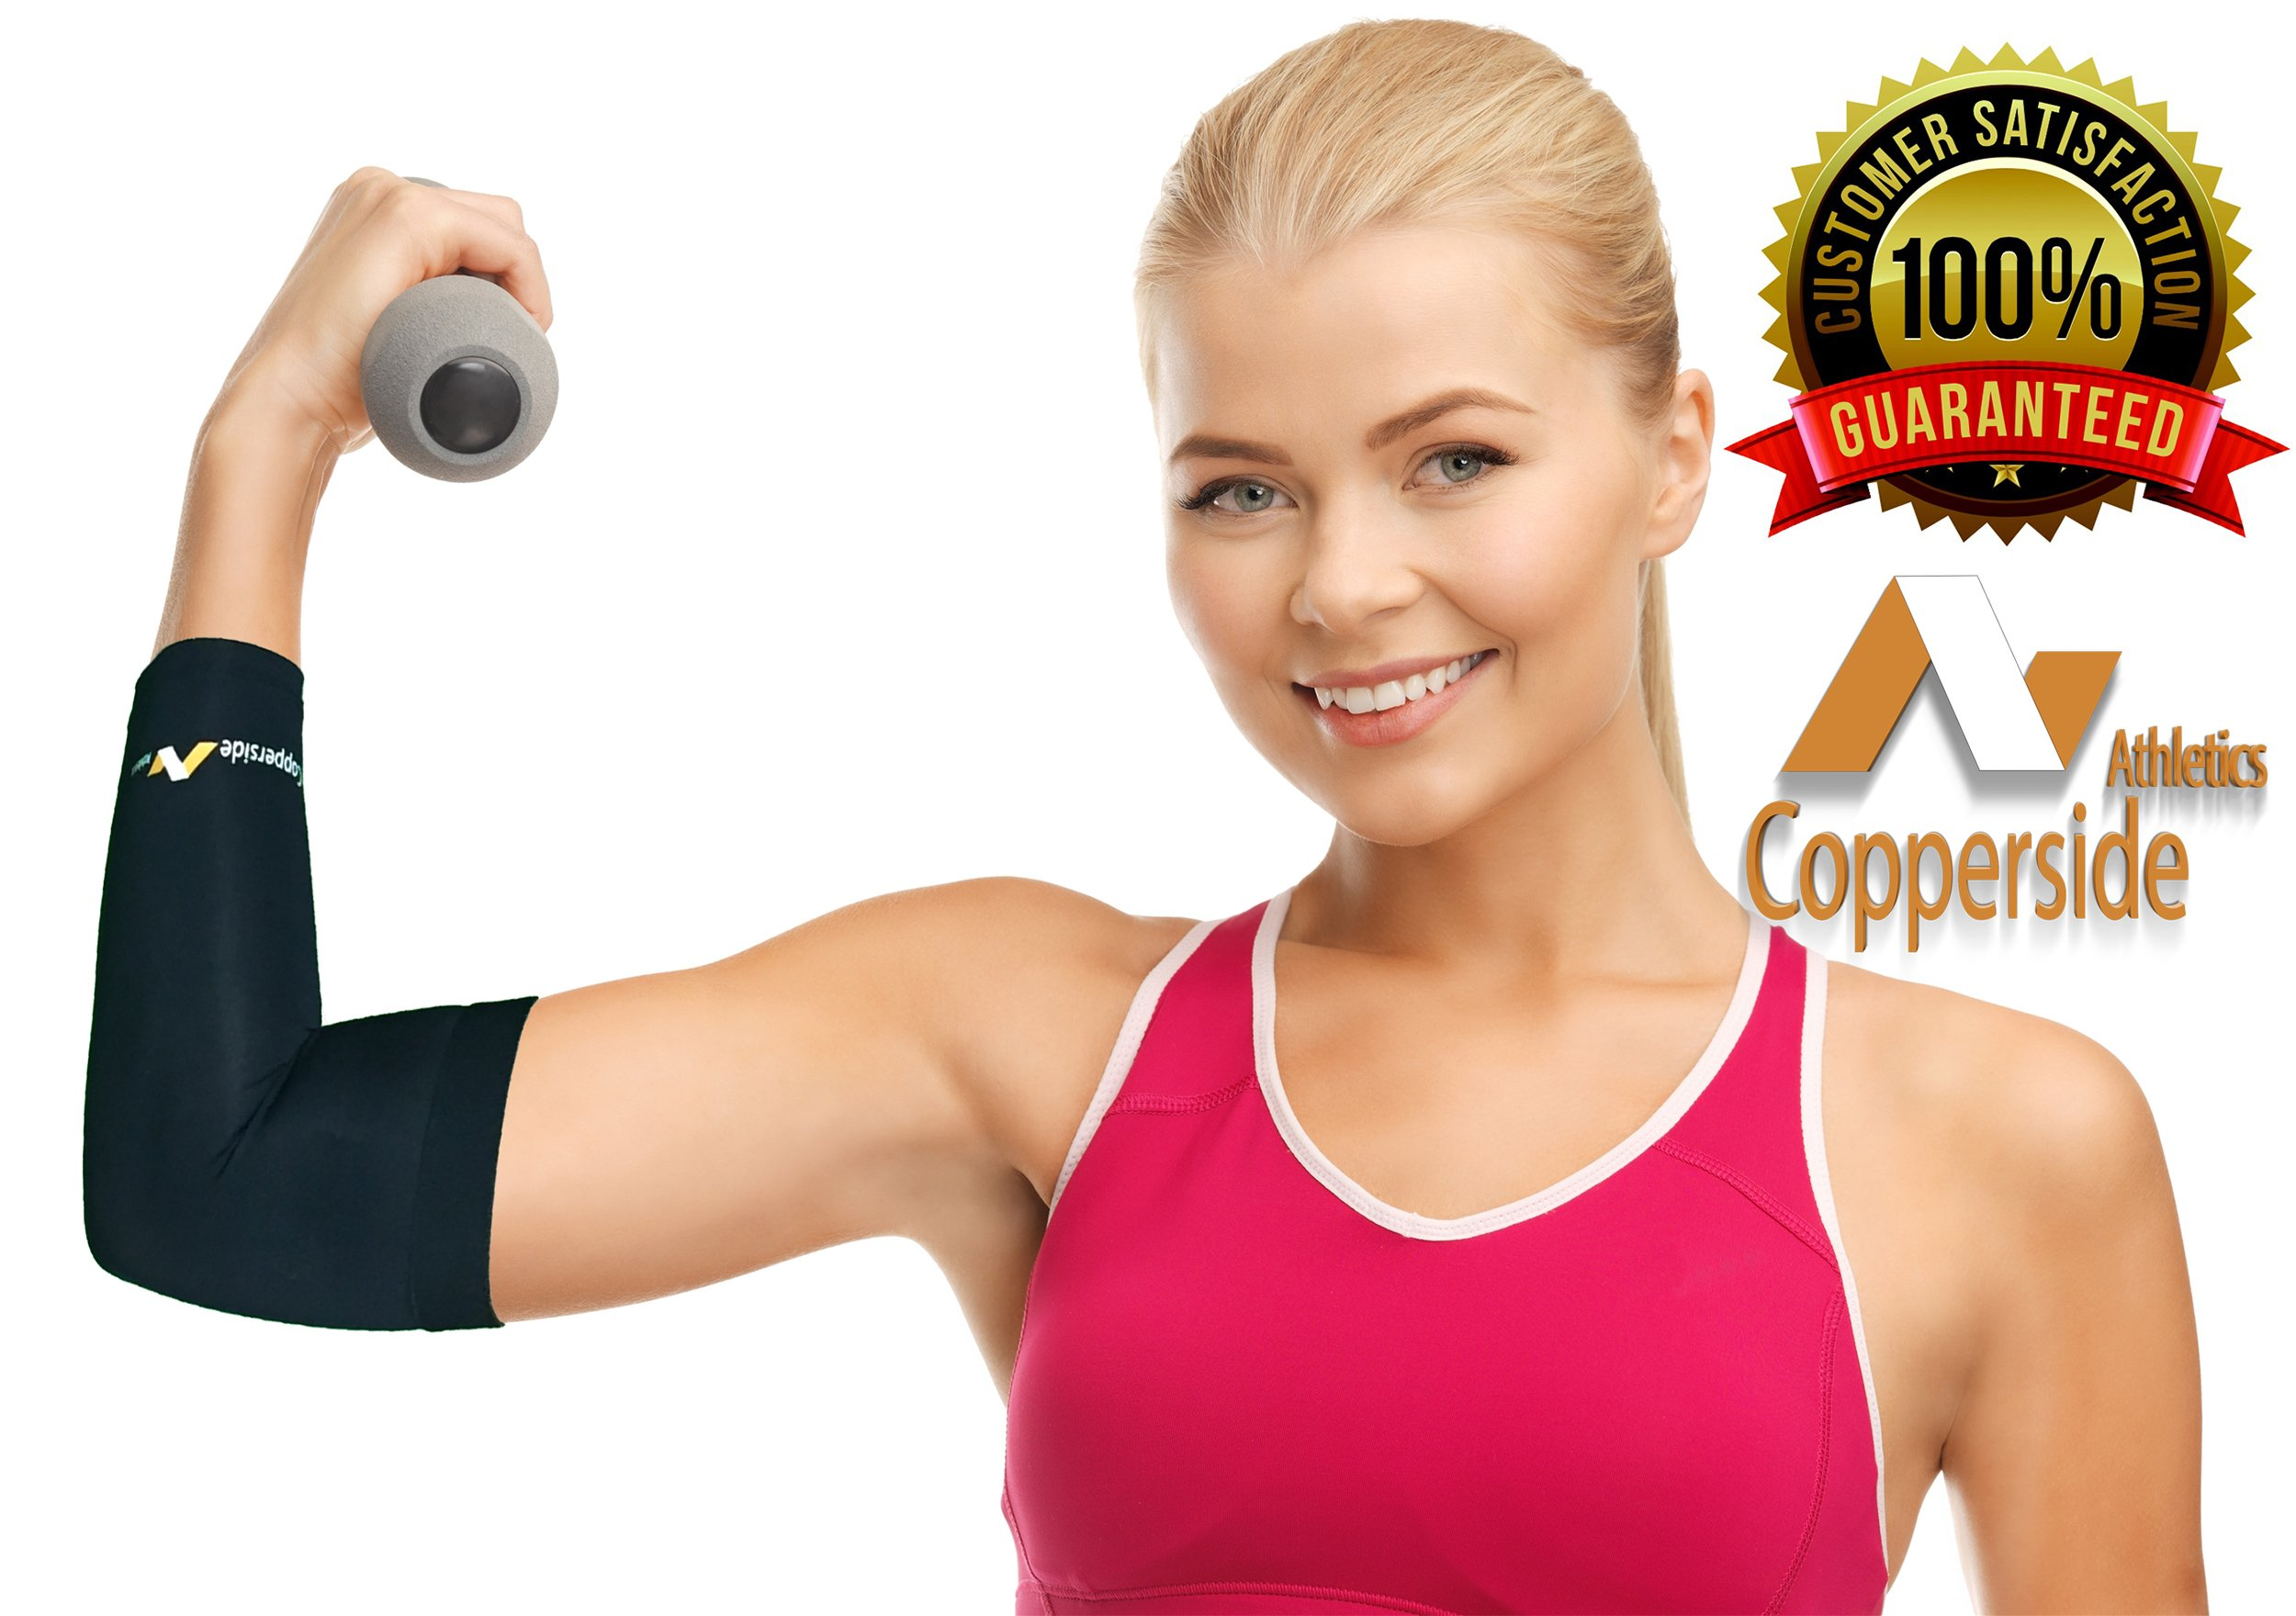 20 Pack Copper Elbow Compression Sleeve*Make Money Now!*(Copperside)Retail Bulk Wholesale for Kinesio, Physio Therapy, Chiropractors, Gyms, Free Display Case with Some Purchases. Full Support Provided by Copperside Athletics (Image #5)